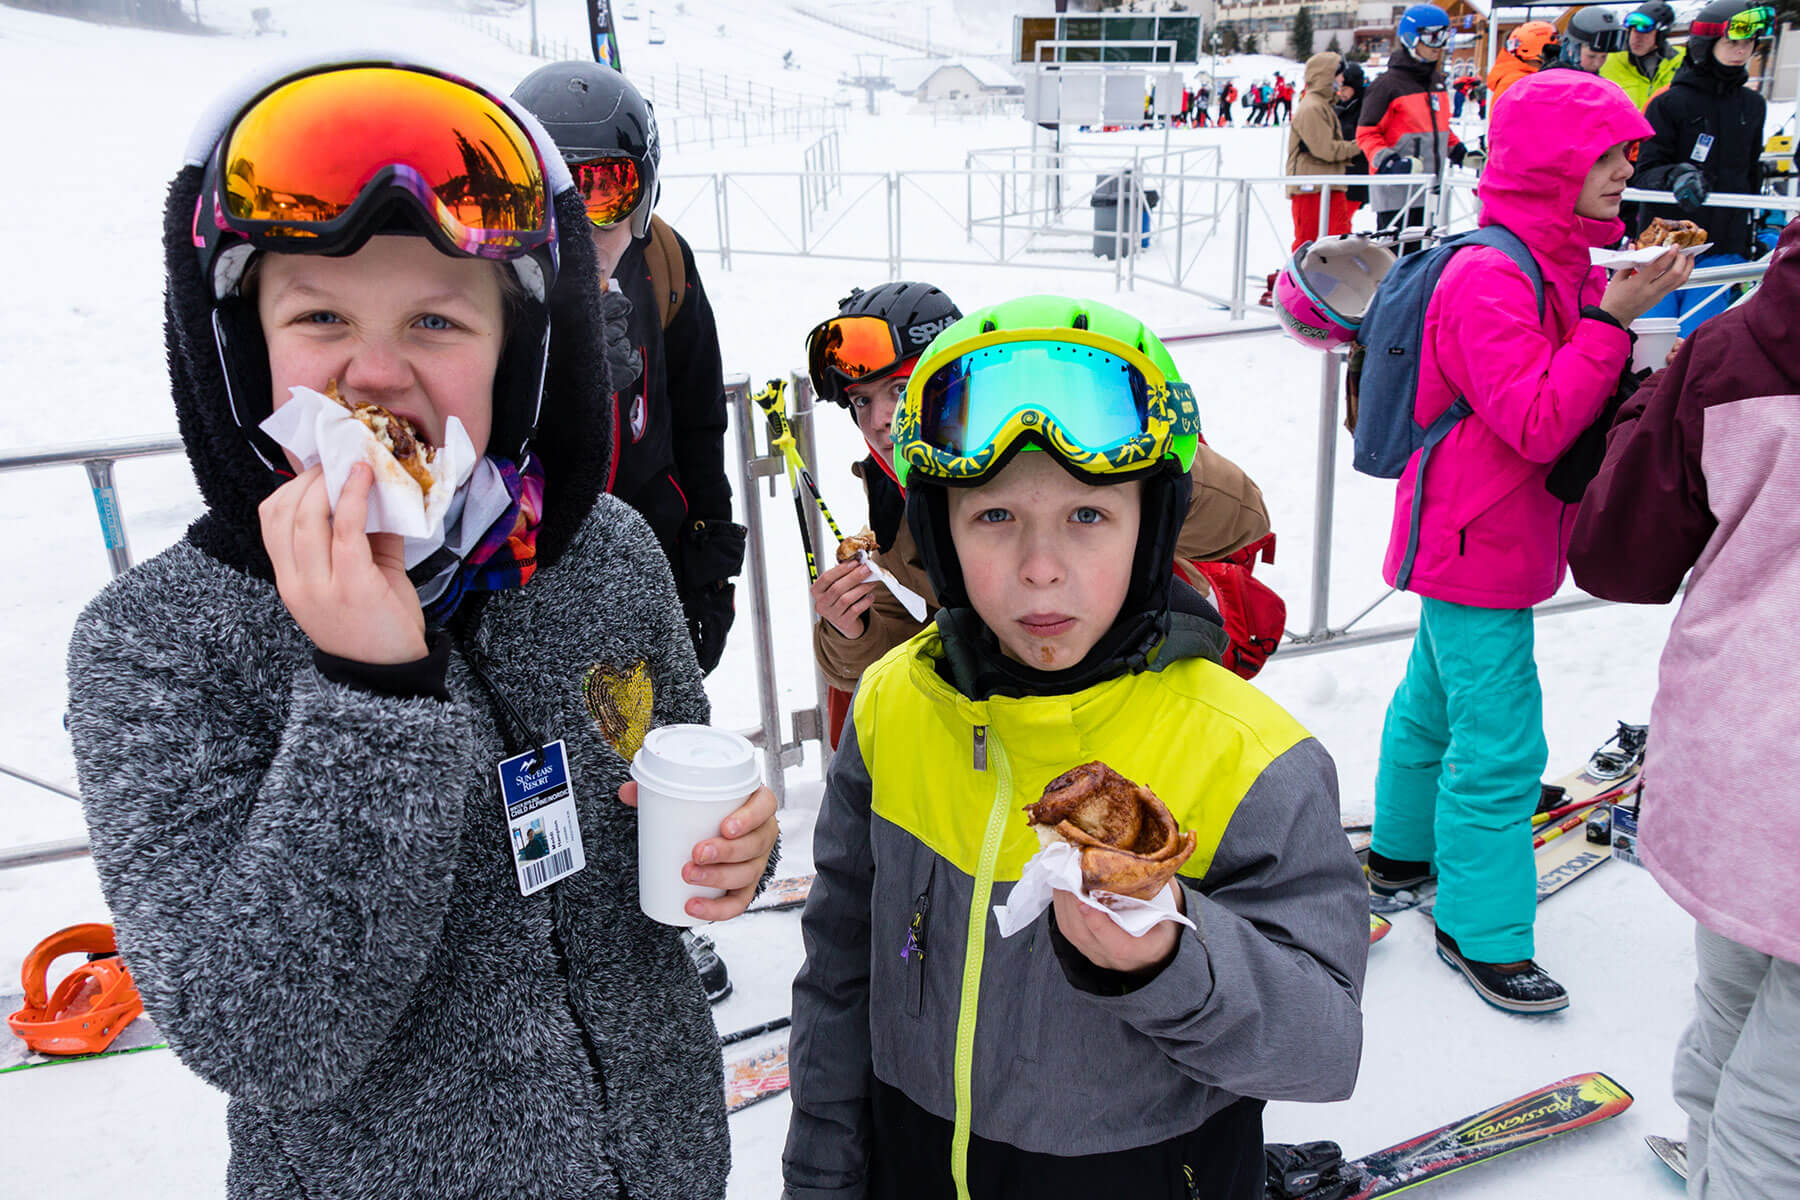 Eating Cinnamon Buns in the Lift Line on Opening Day